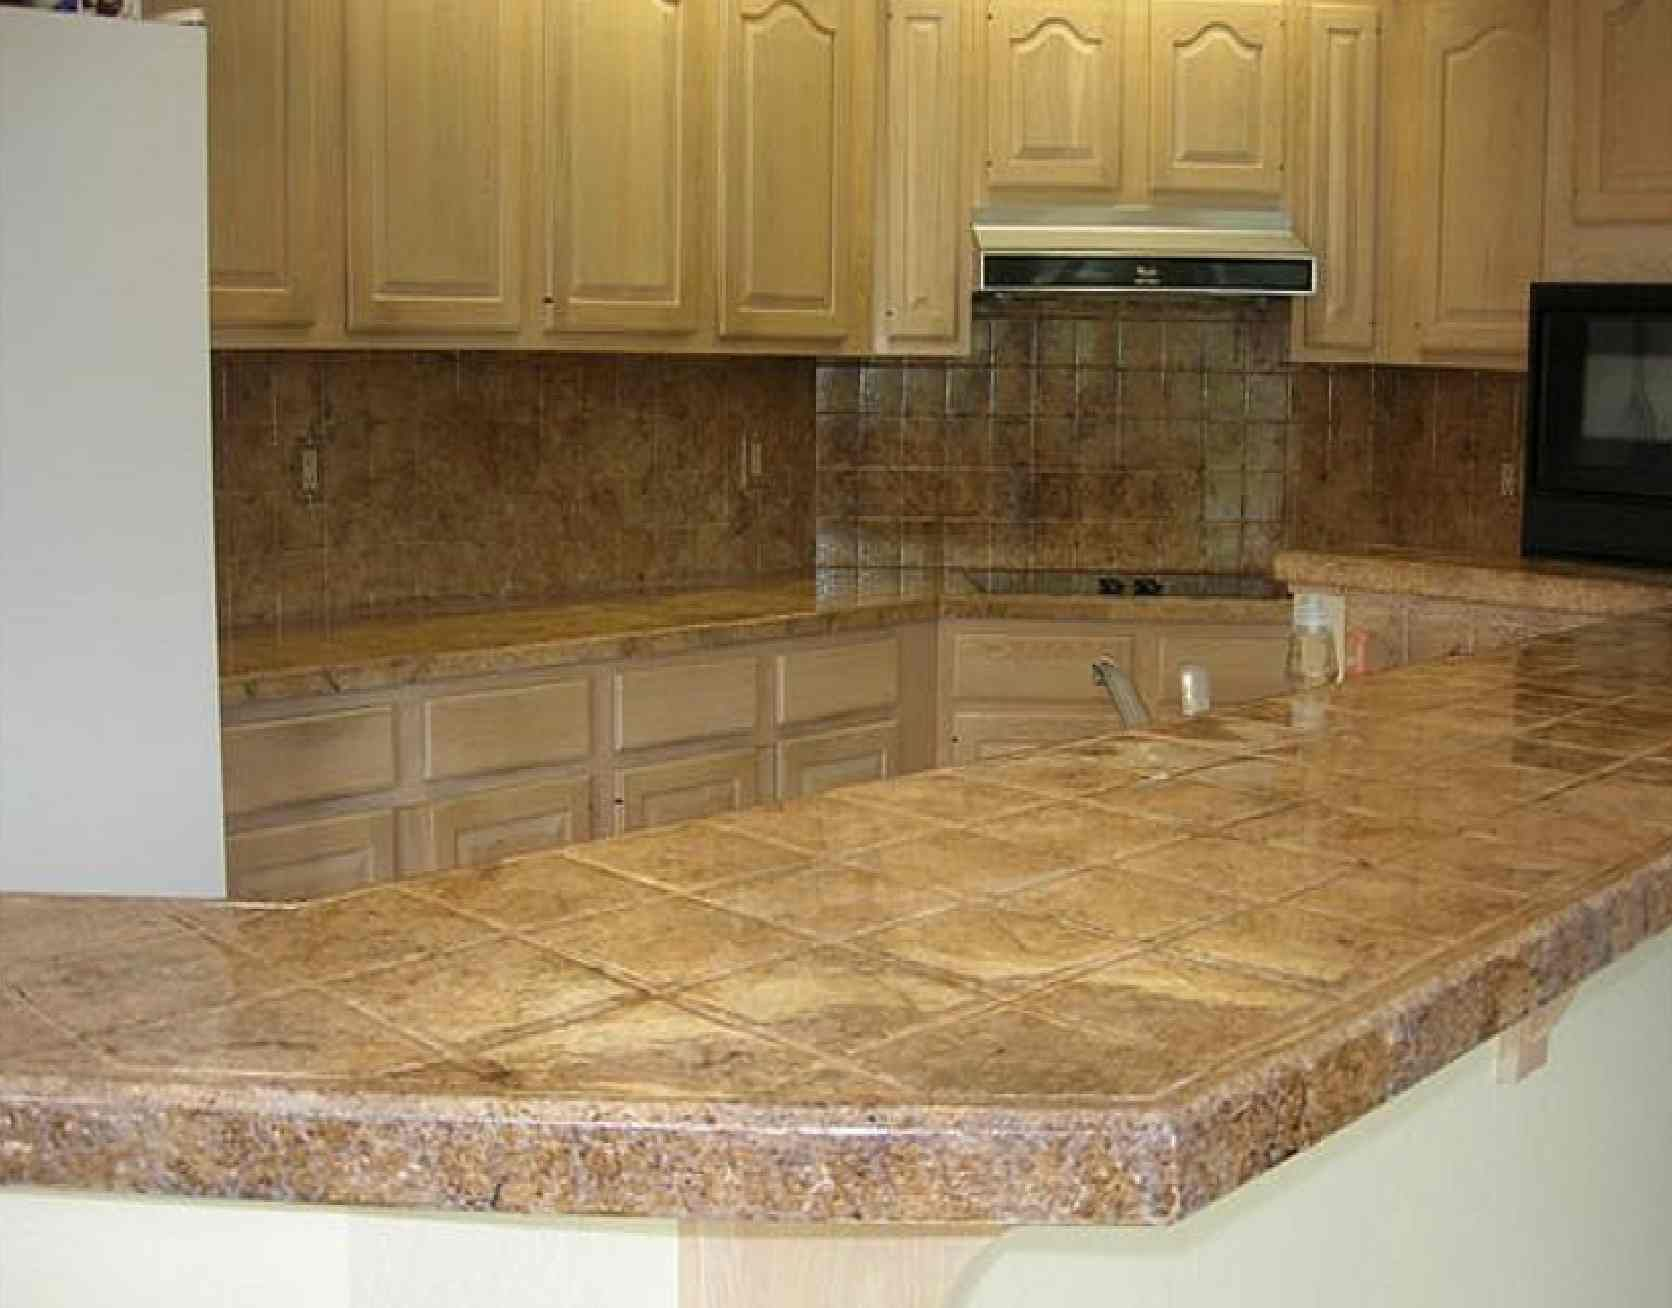 Painting Tiles In The Kitchen Painting Tile Countertops Http Wwwrocheroyalcom Painting